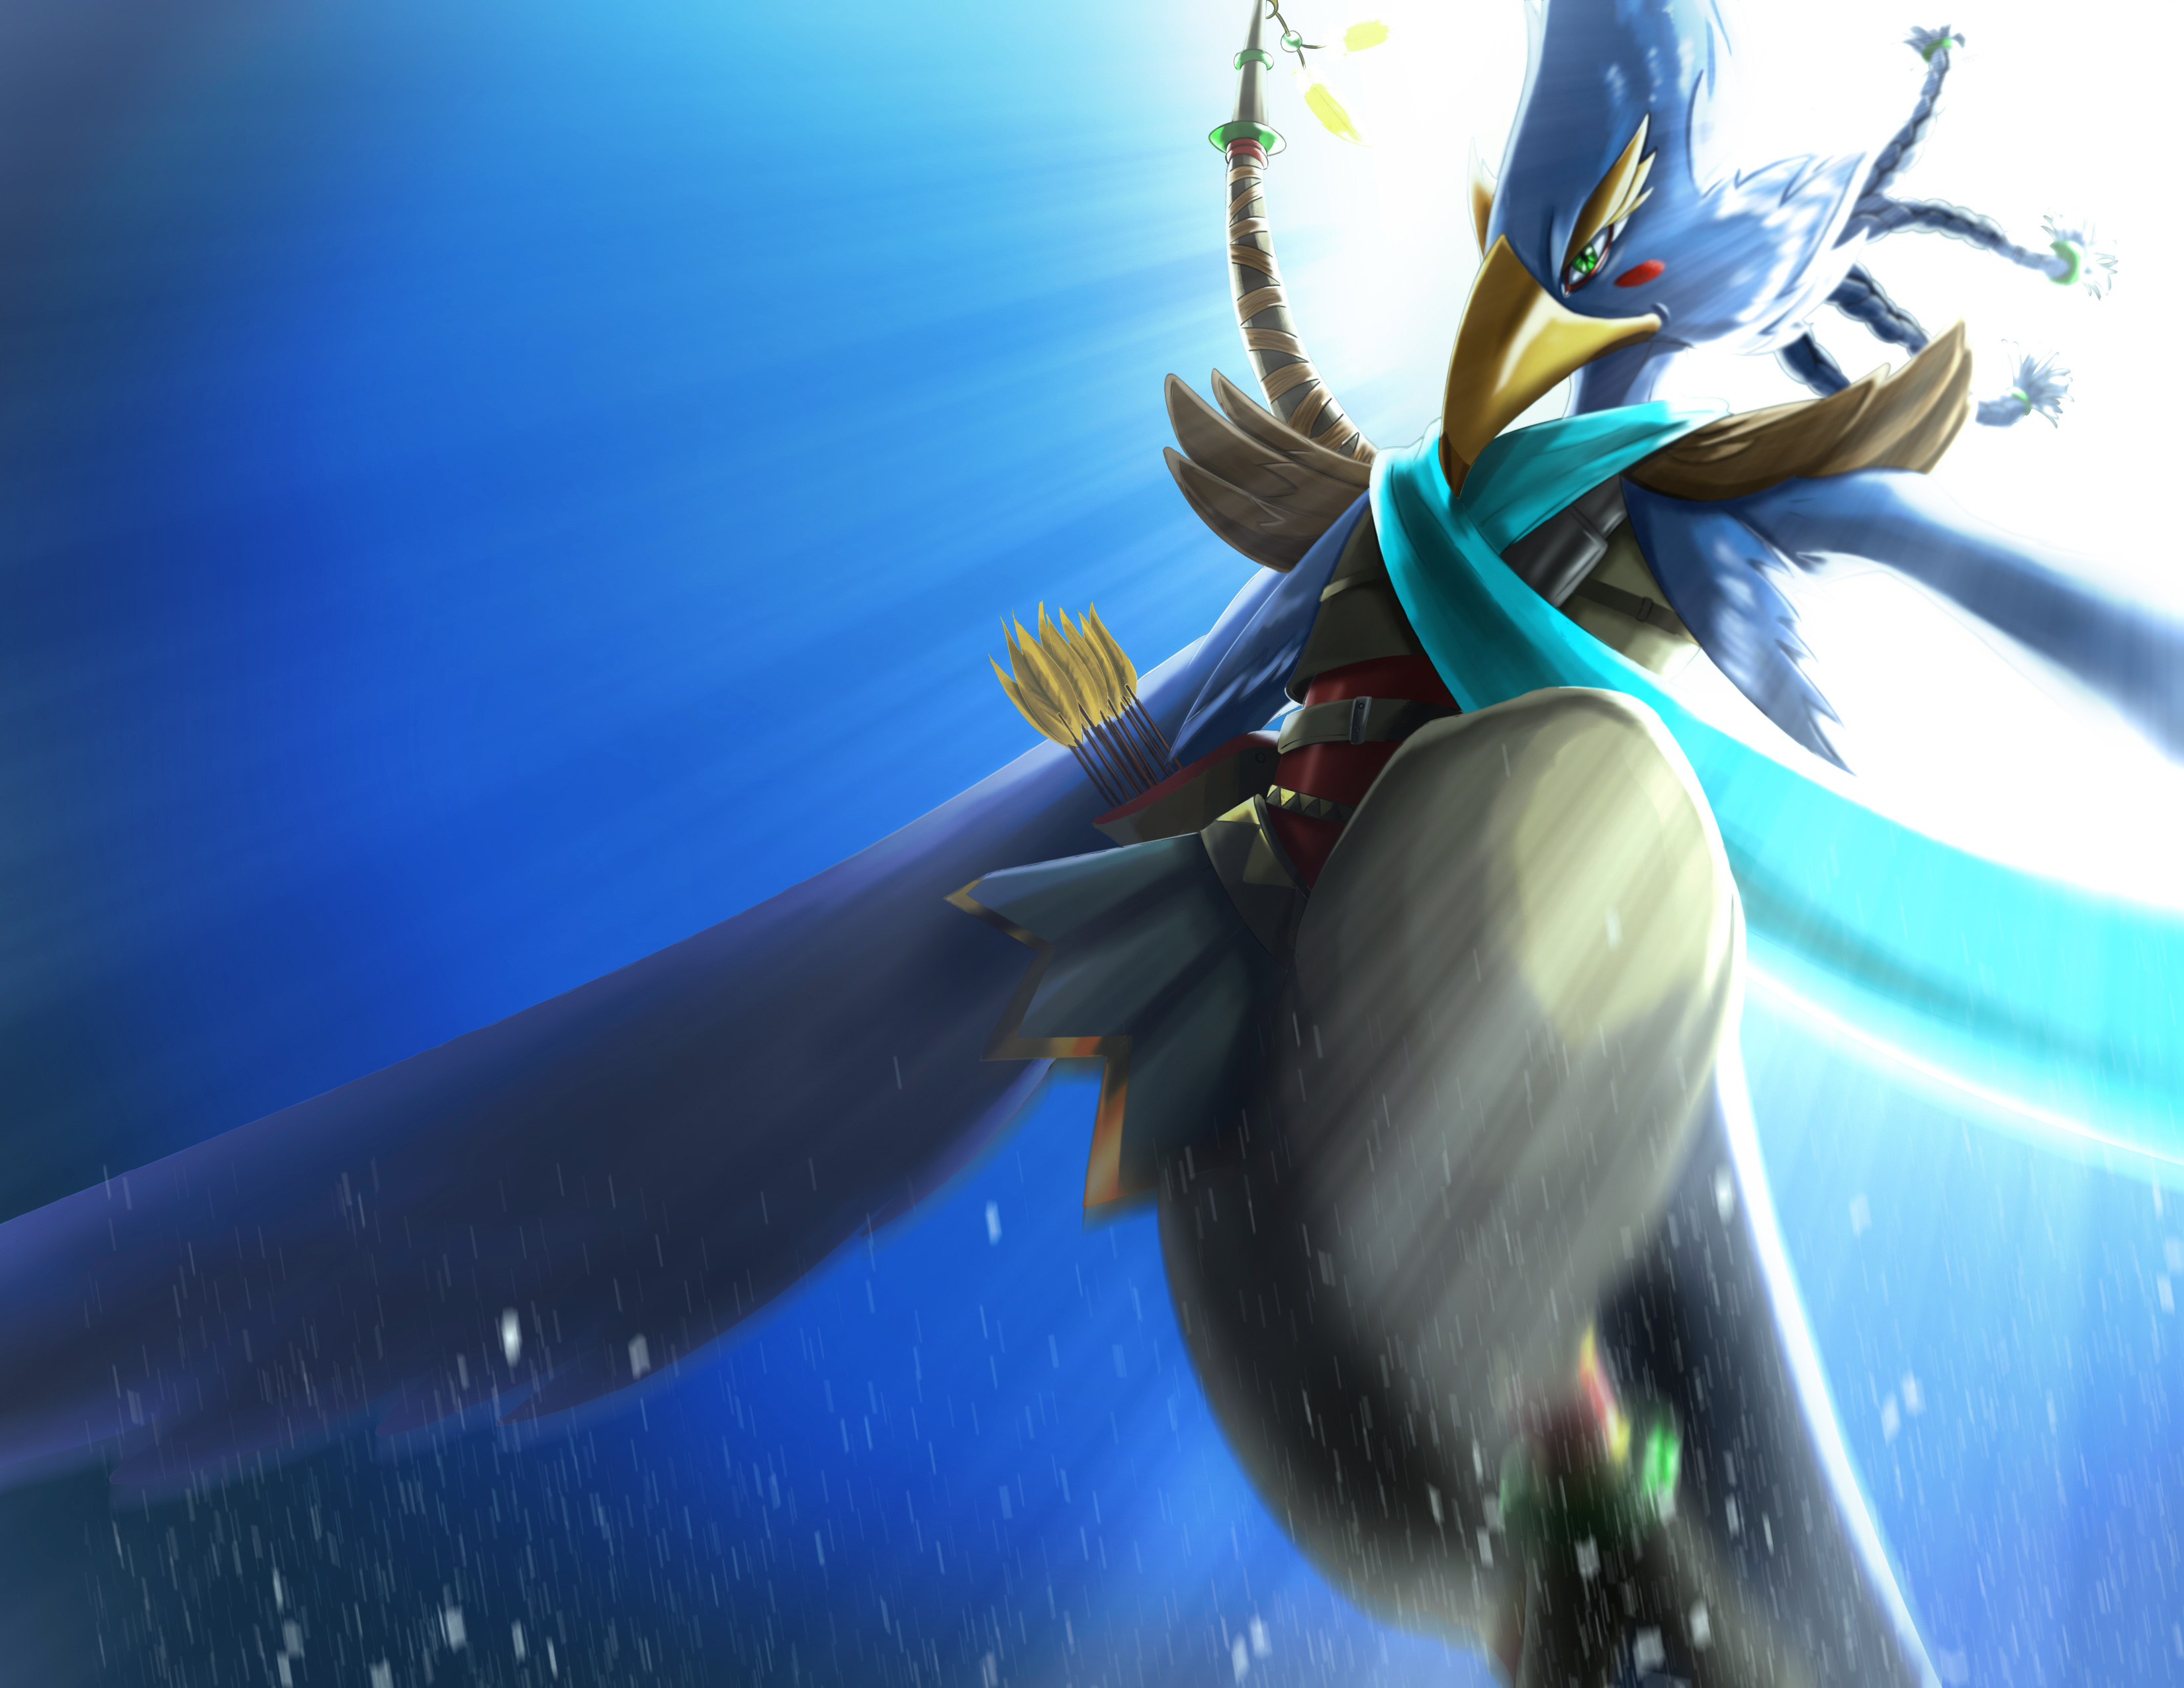 2560x1440 Revali The Legend Of Zelda Breath Of The Wild 1440p